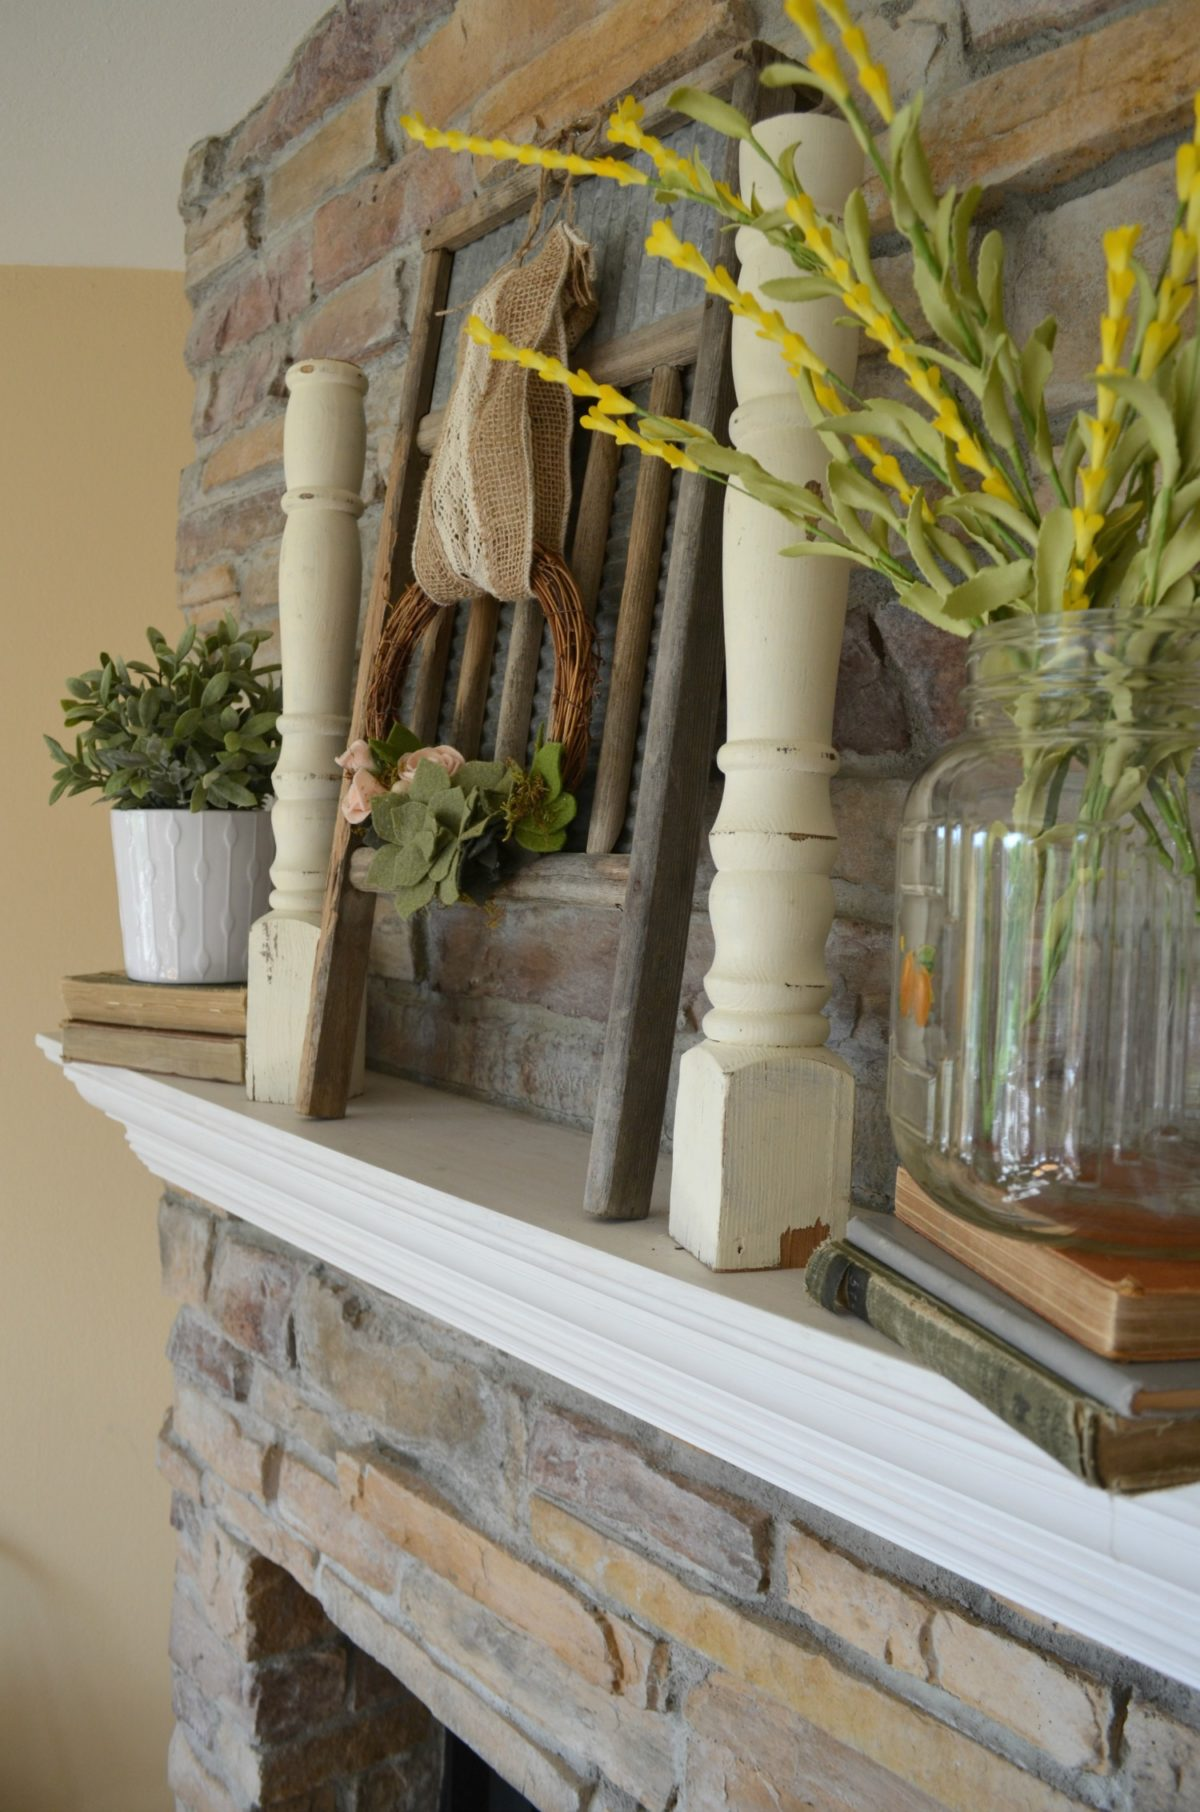 Vintage Style Summer Mantel and Old Glass Jar